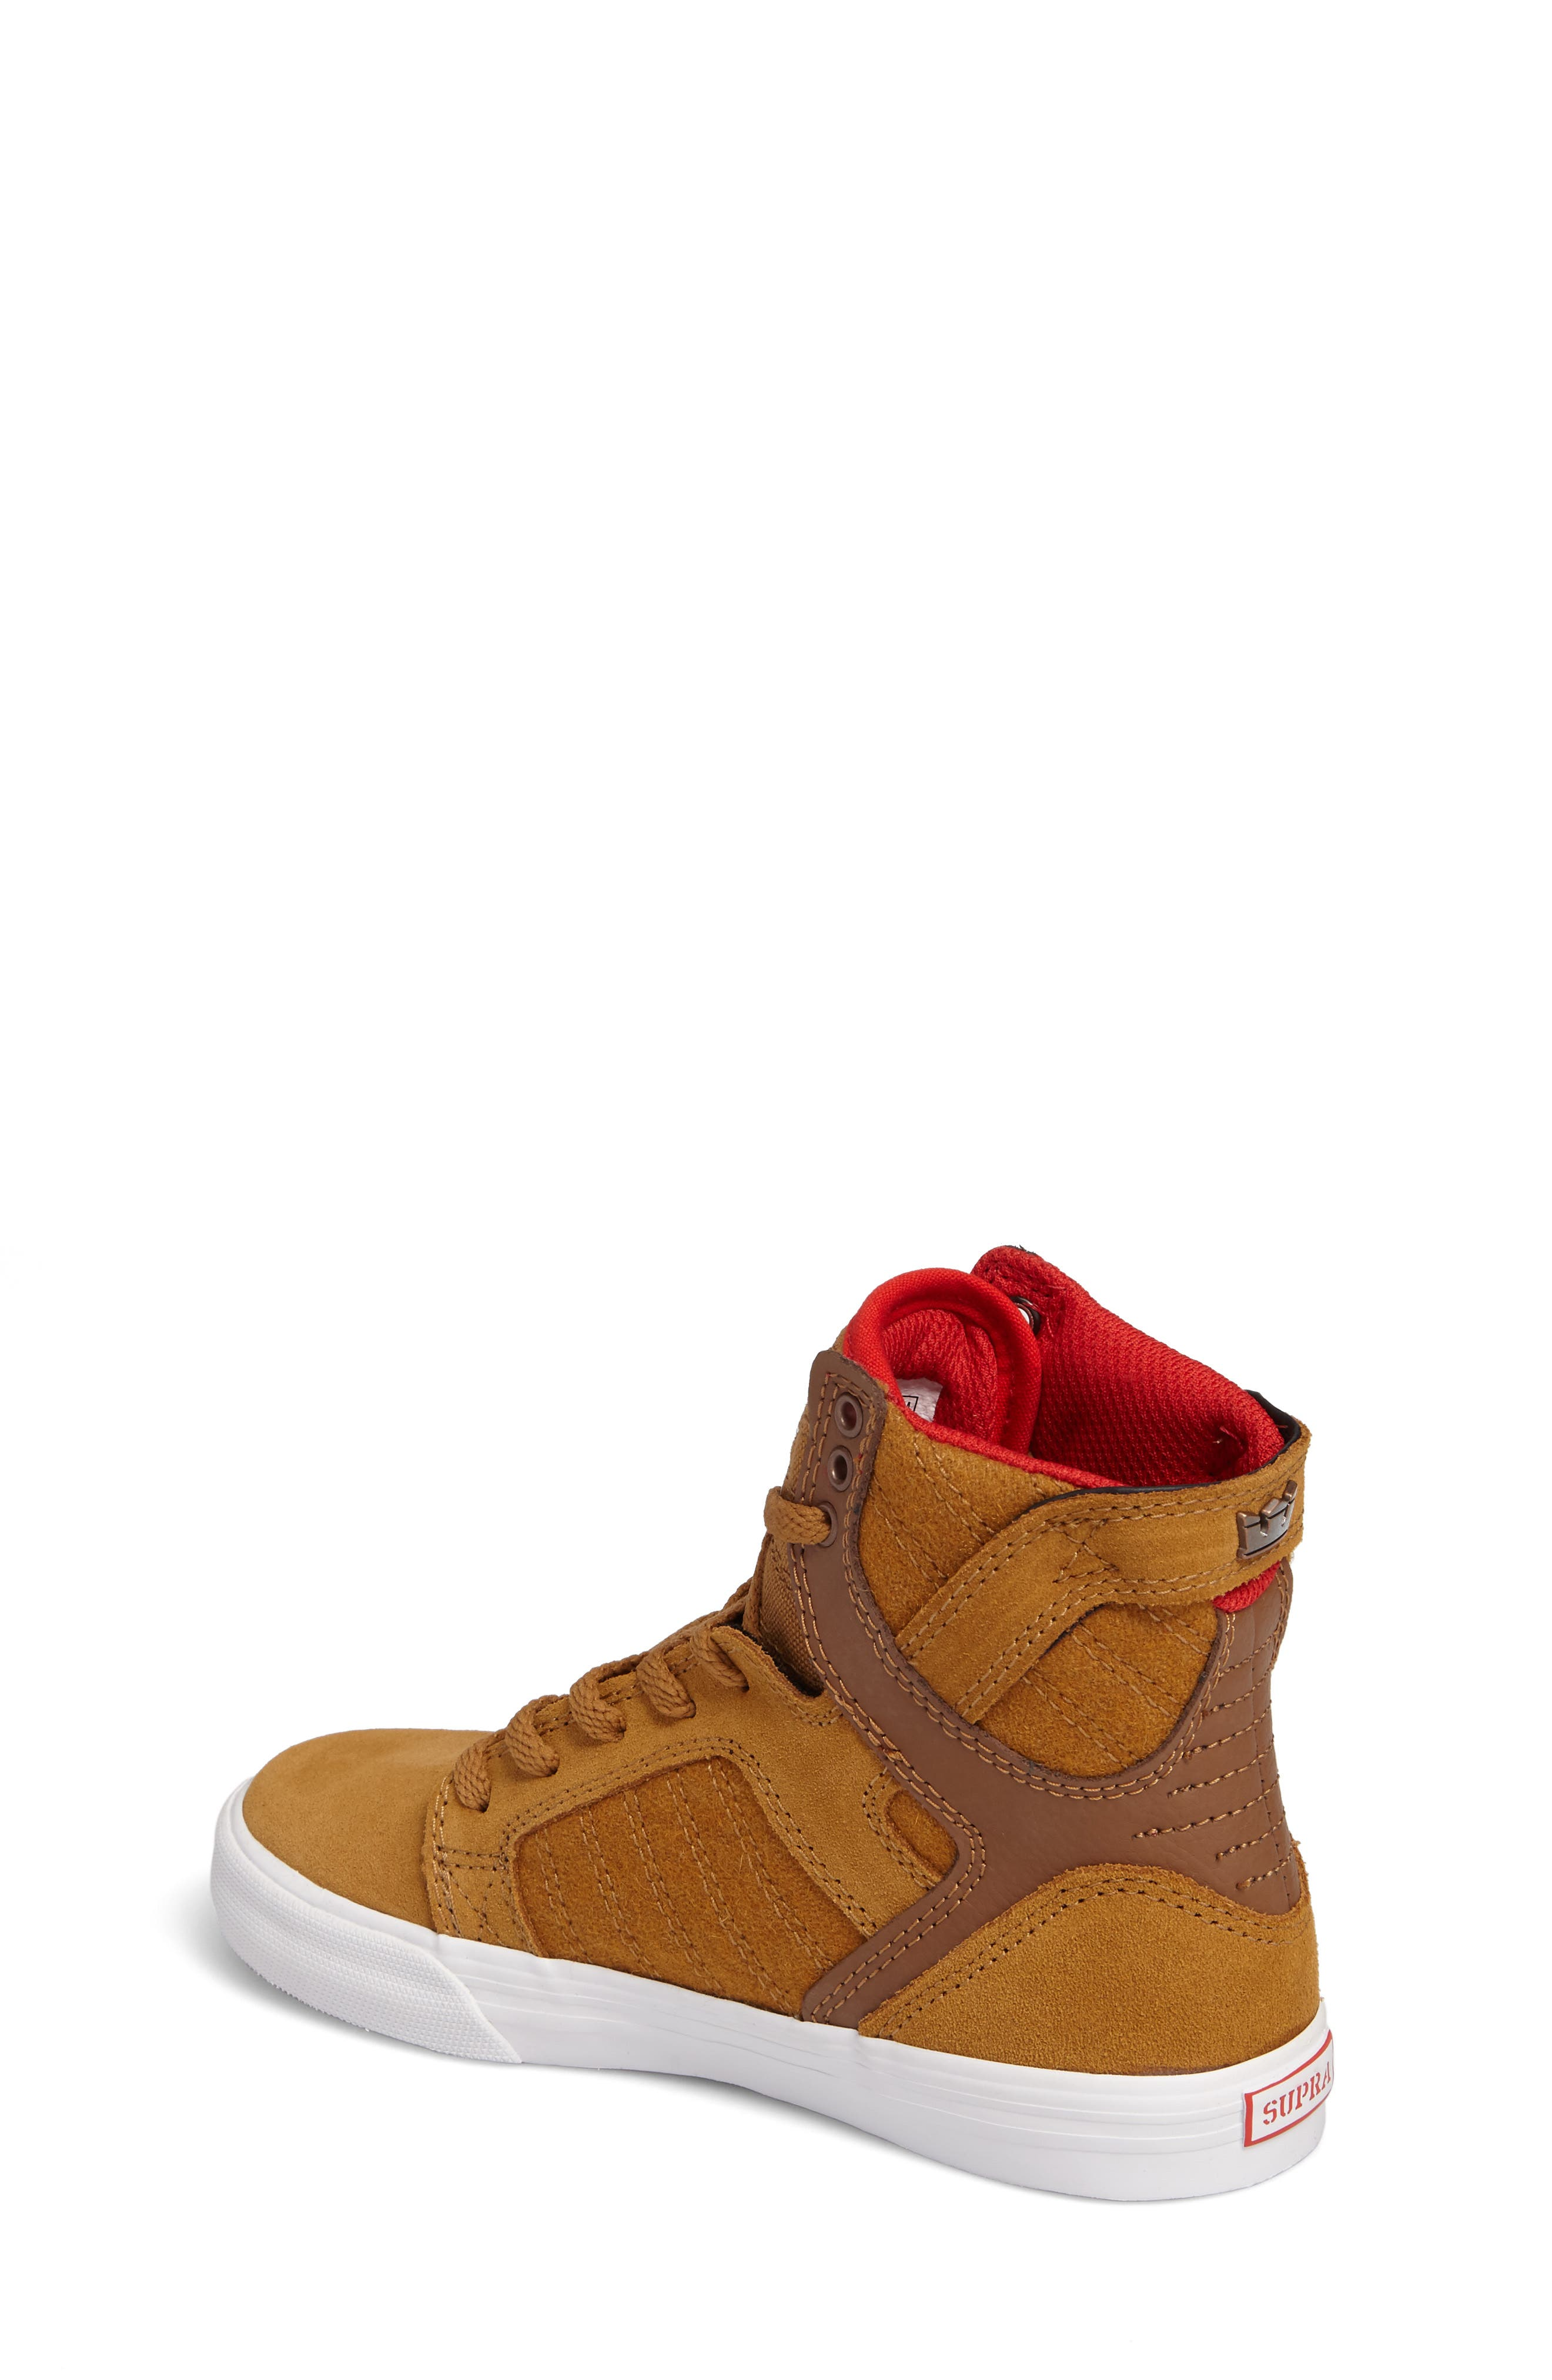 Skytop High Top Sneaker,                             Alternate thumbnail 2, color,                             257